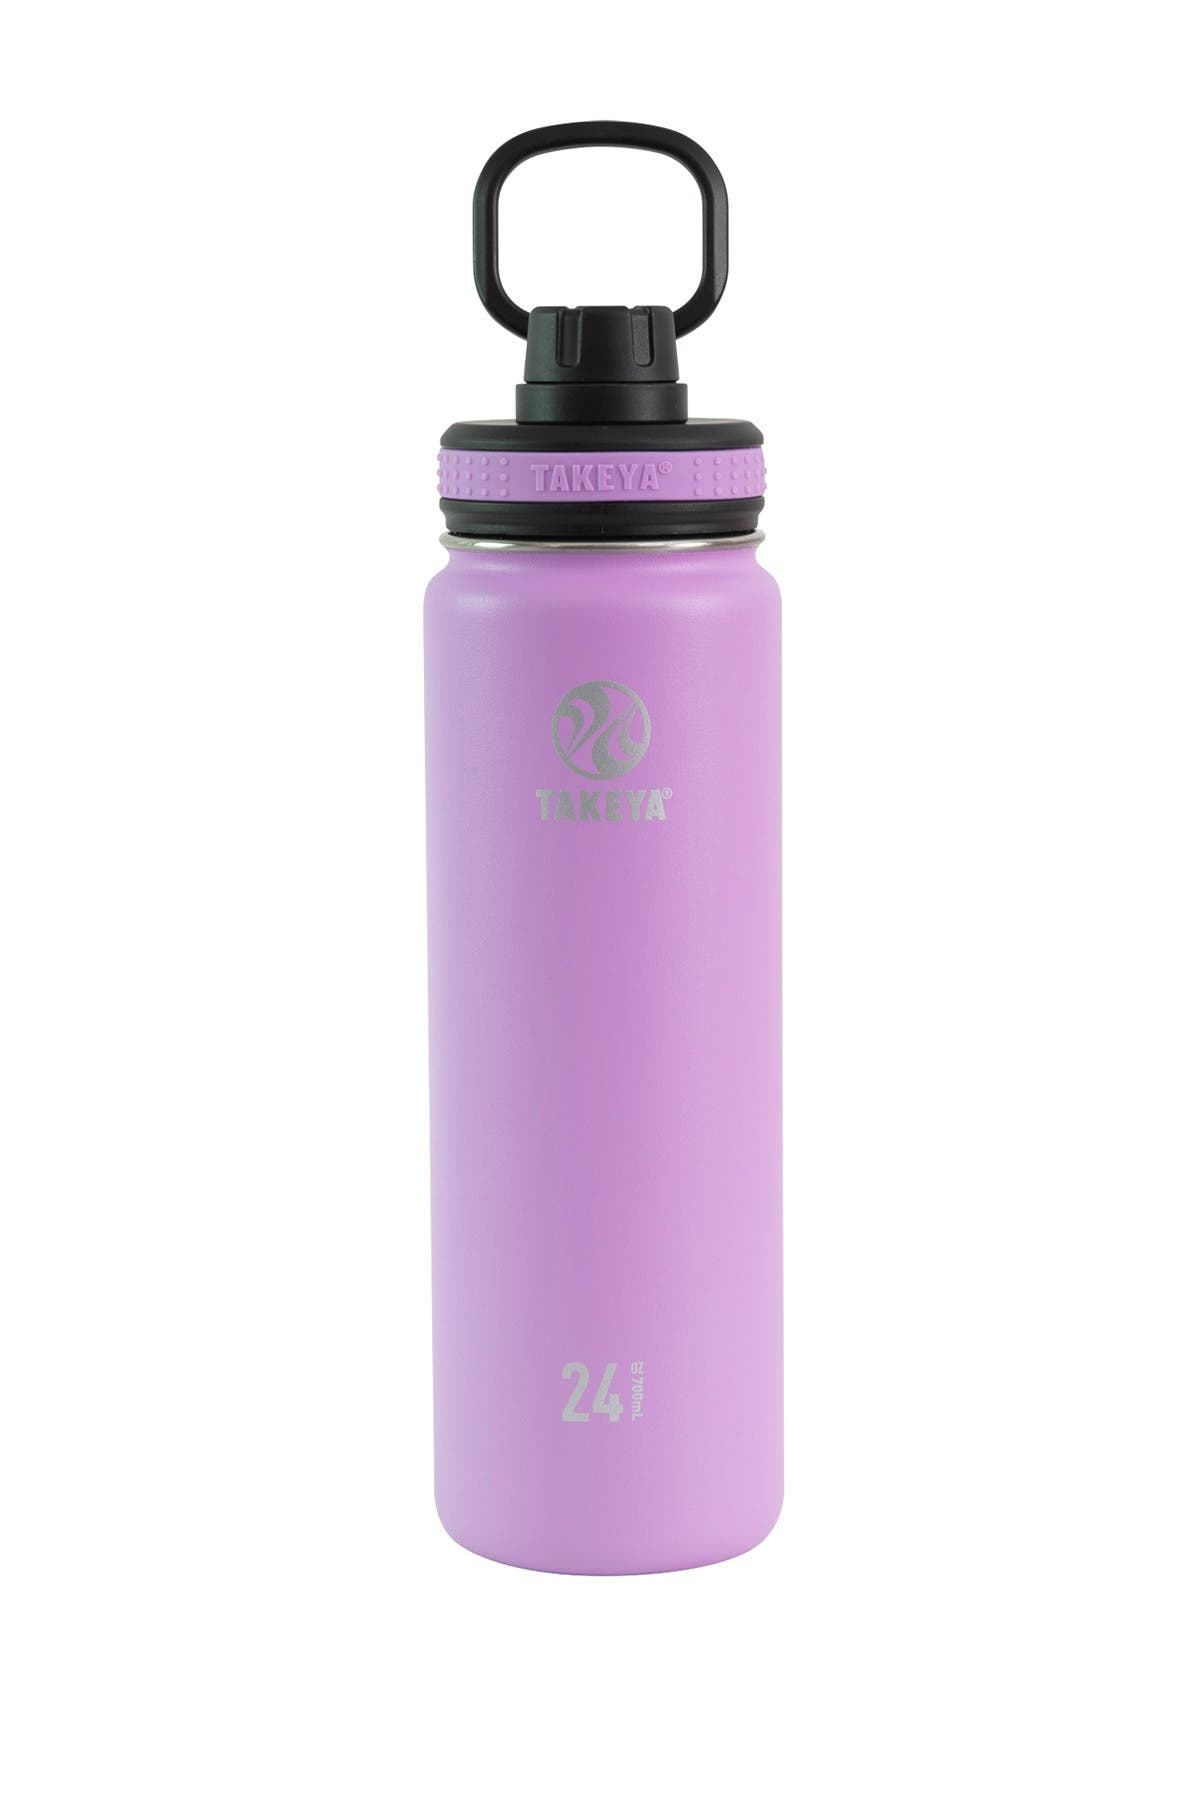 Image of Takeya Lilac 24oz. Originals Insulated Stainless Steel Bottle